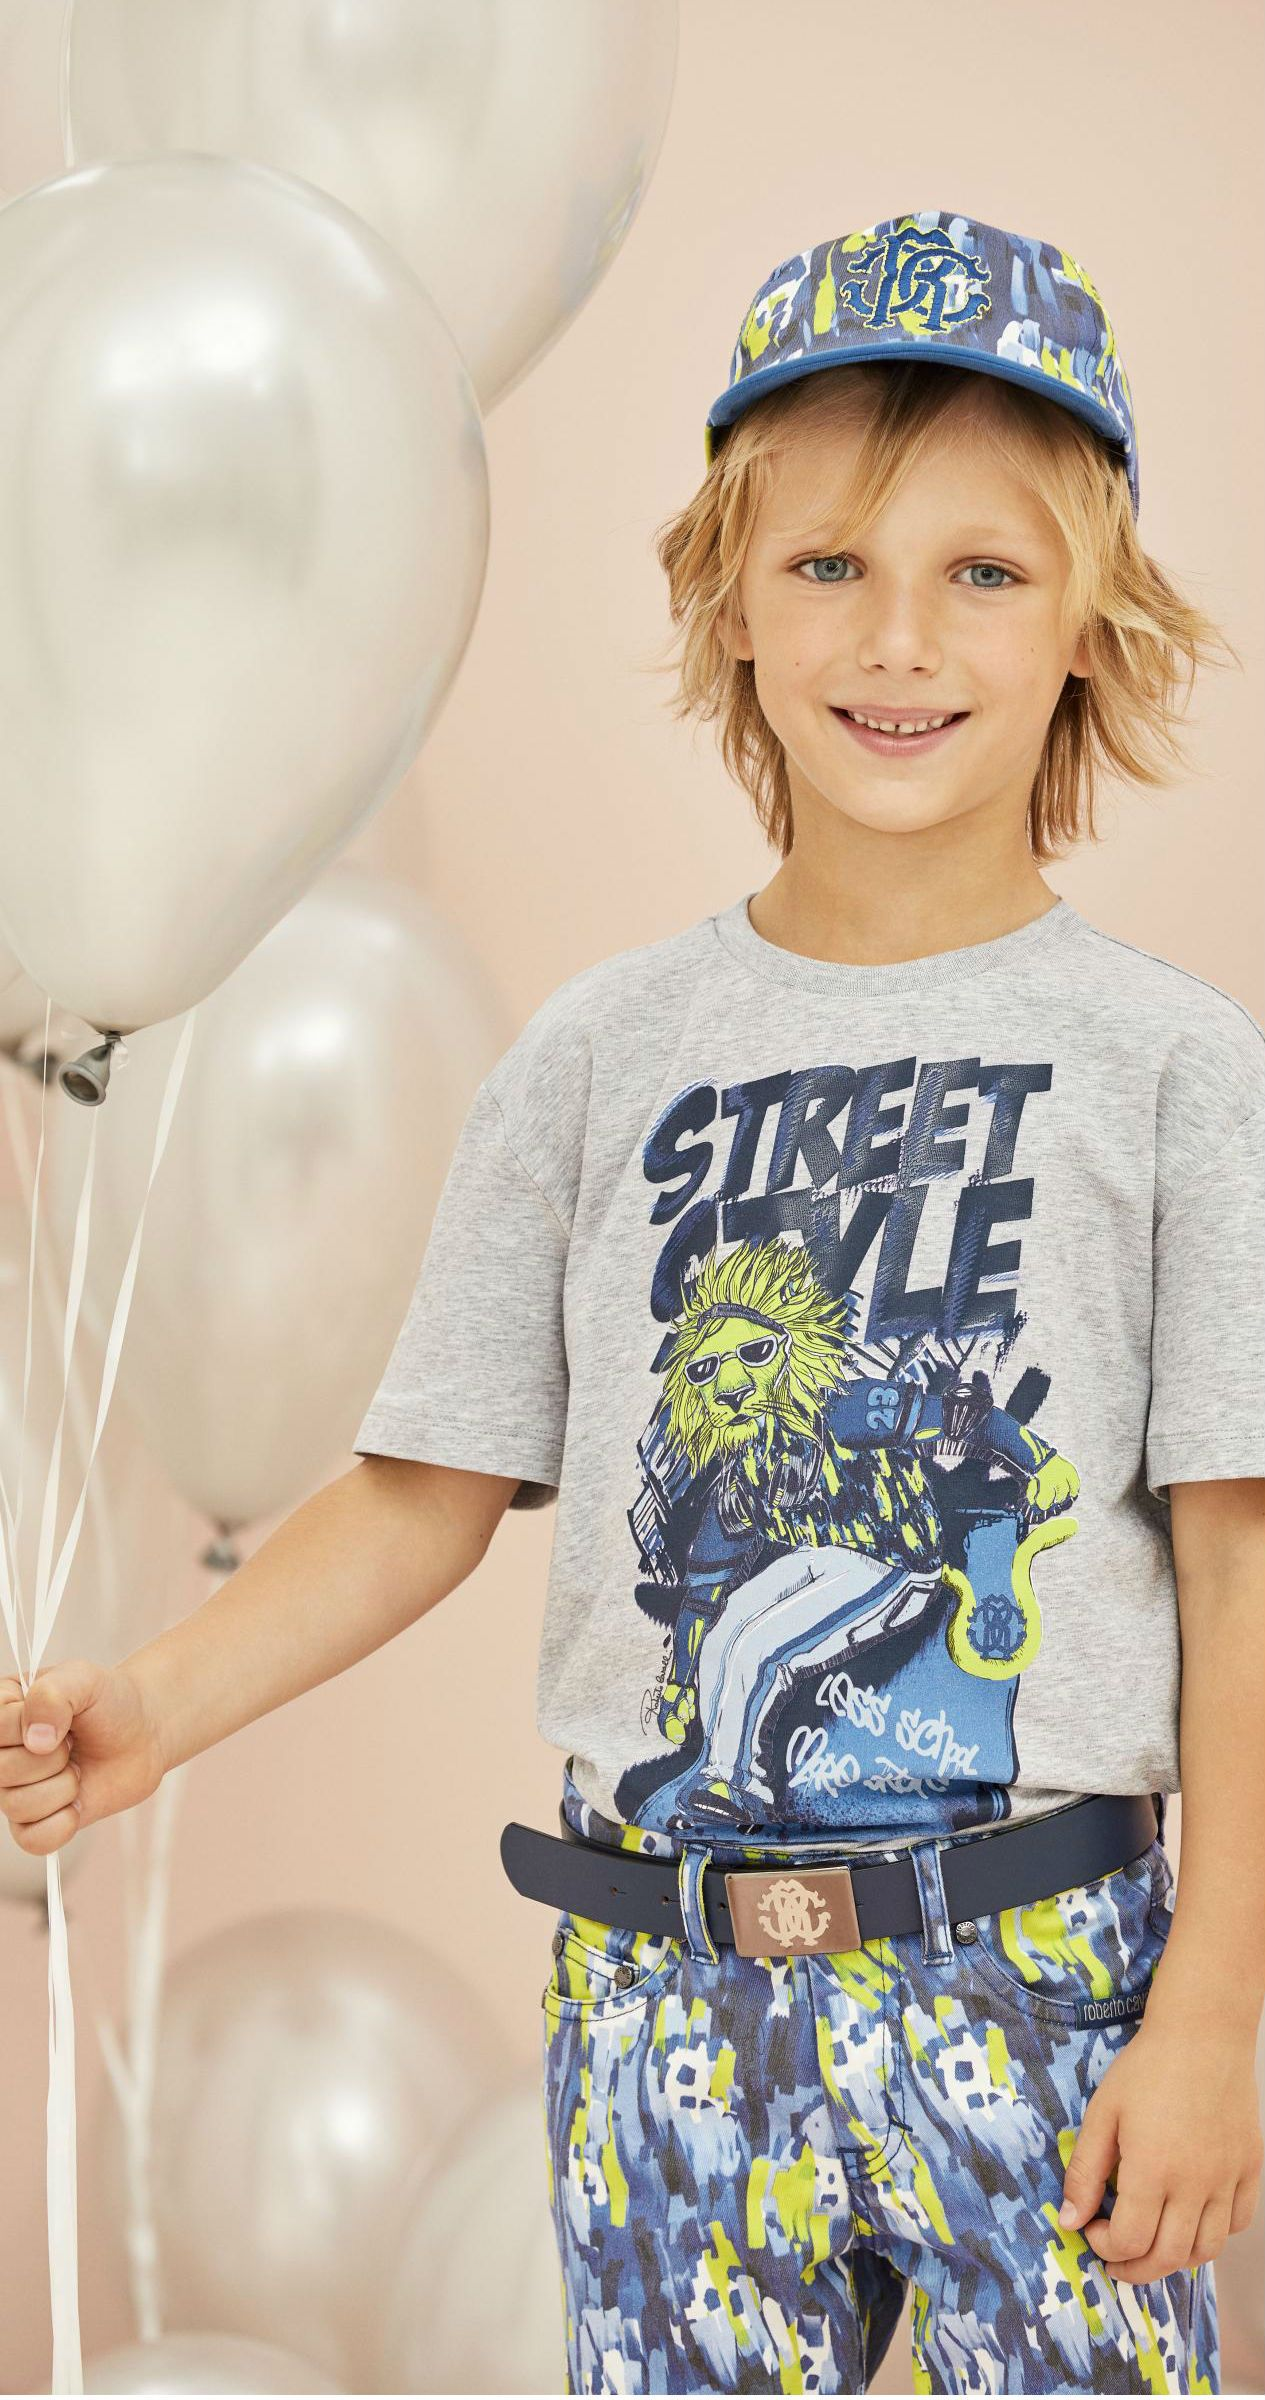 Our picks of the most adorable dressy spring clothes for boys and girls.